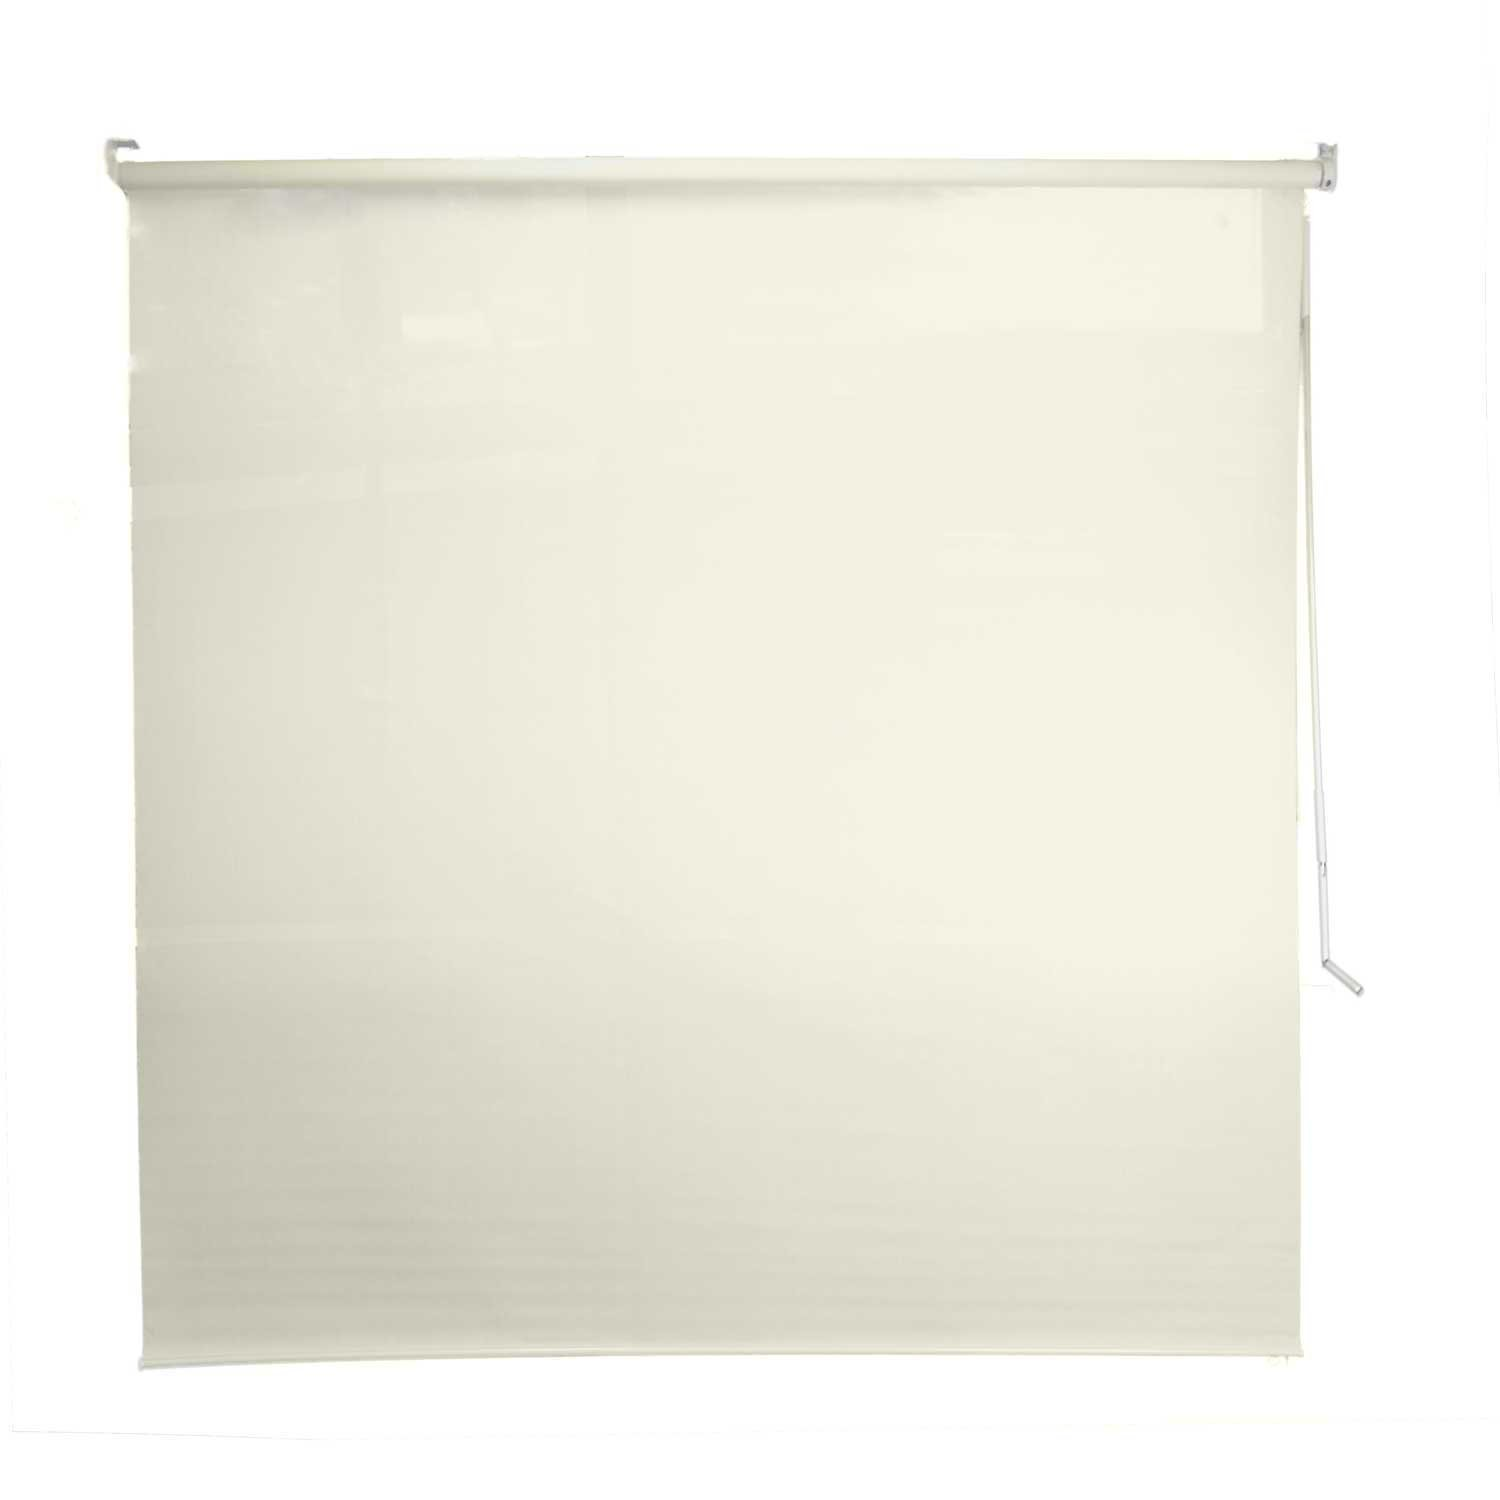 DALIX Outdoor Roller Shade Exterior Roll-Up Sun Shade Patio Outdoor in Off-White (Beige)